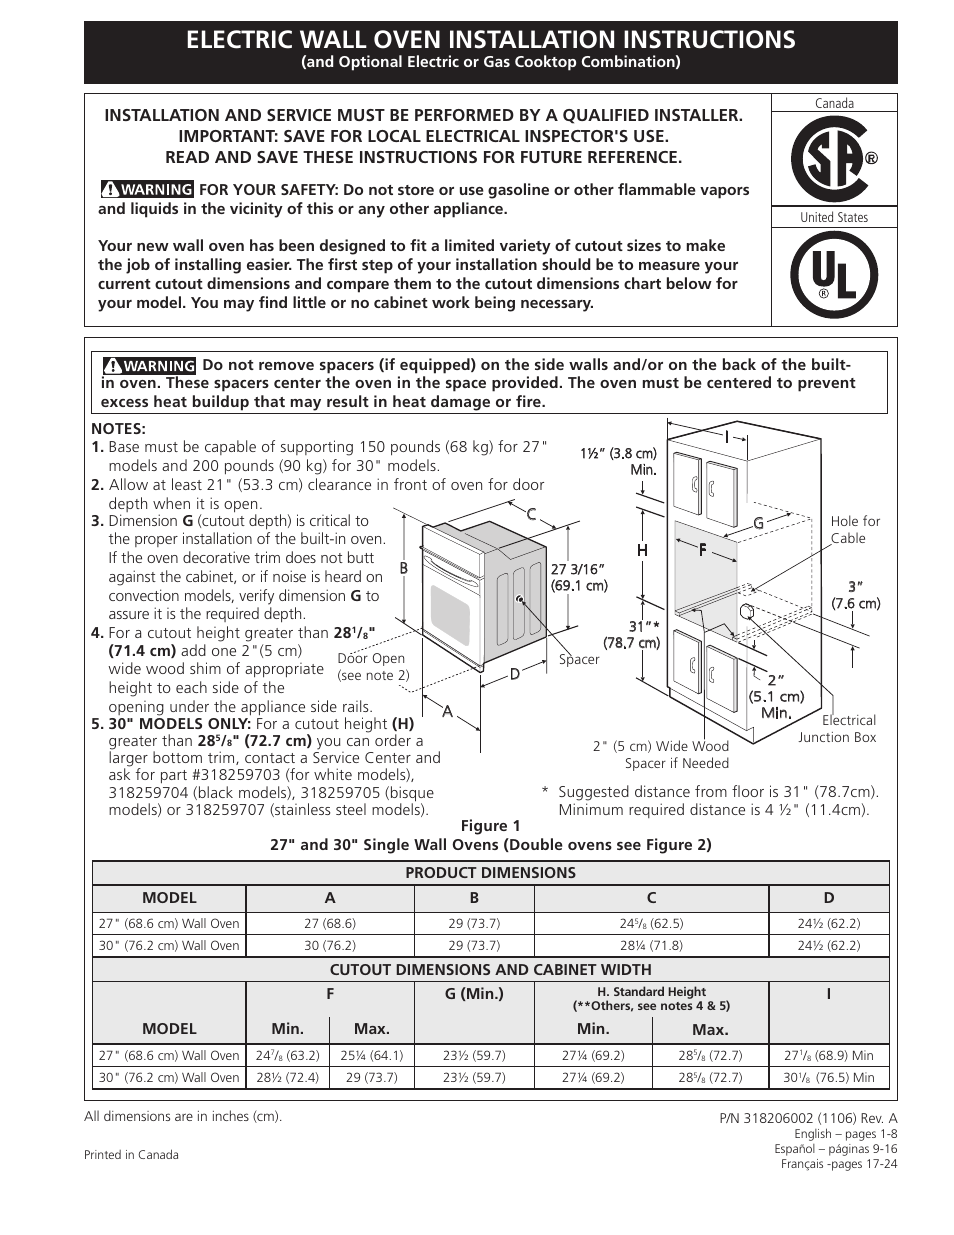 FRIGIDAIRE FGET3065KB User Manual | 24 pages | Also for: FPET3085KF,  FFET3025LS, FGET3065KF, FGET3065KW, FGET2745KB, FGET2765KF, FFET2725LS,  FGET2765KB, ...